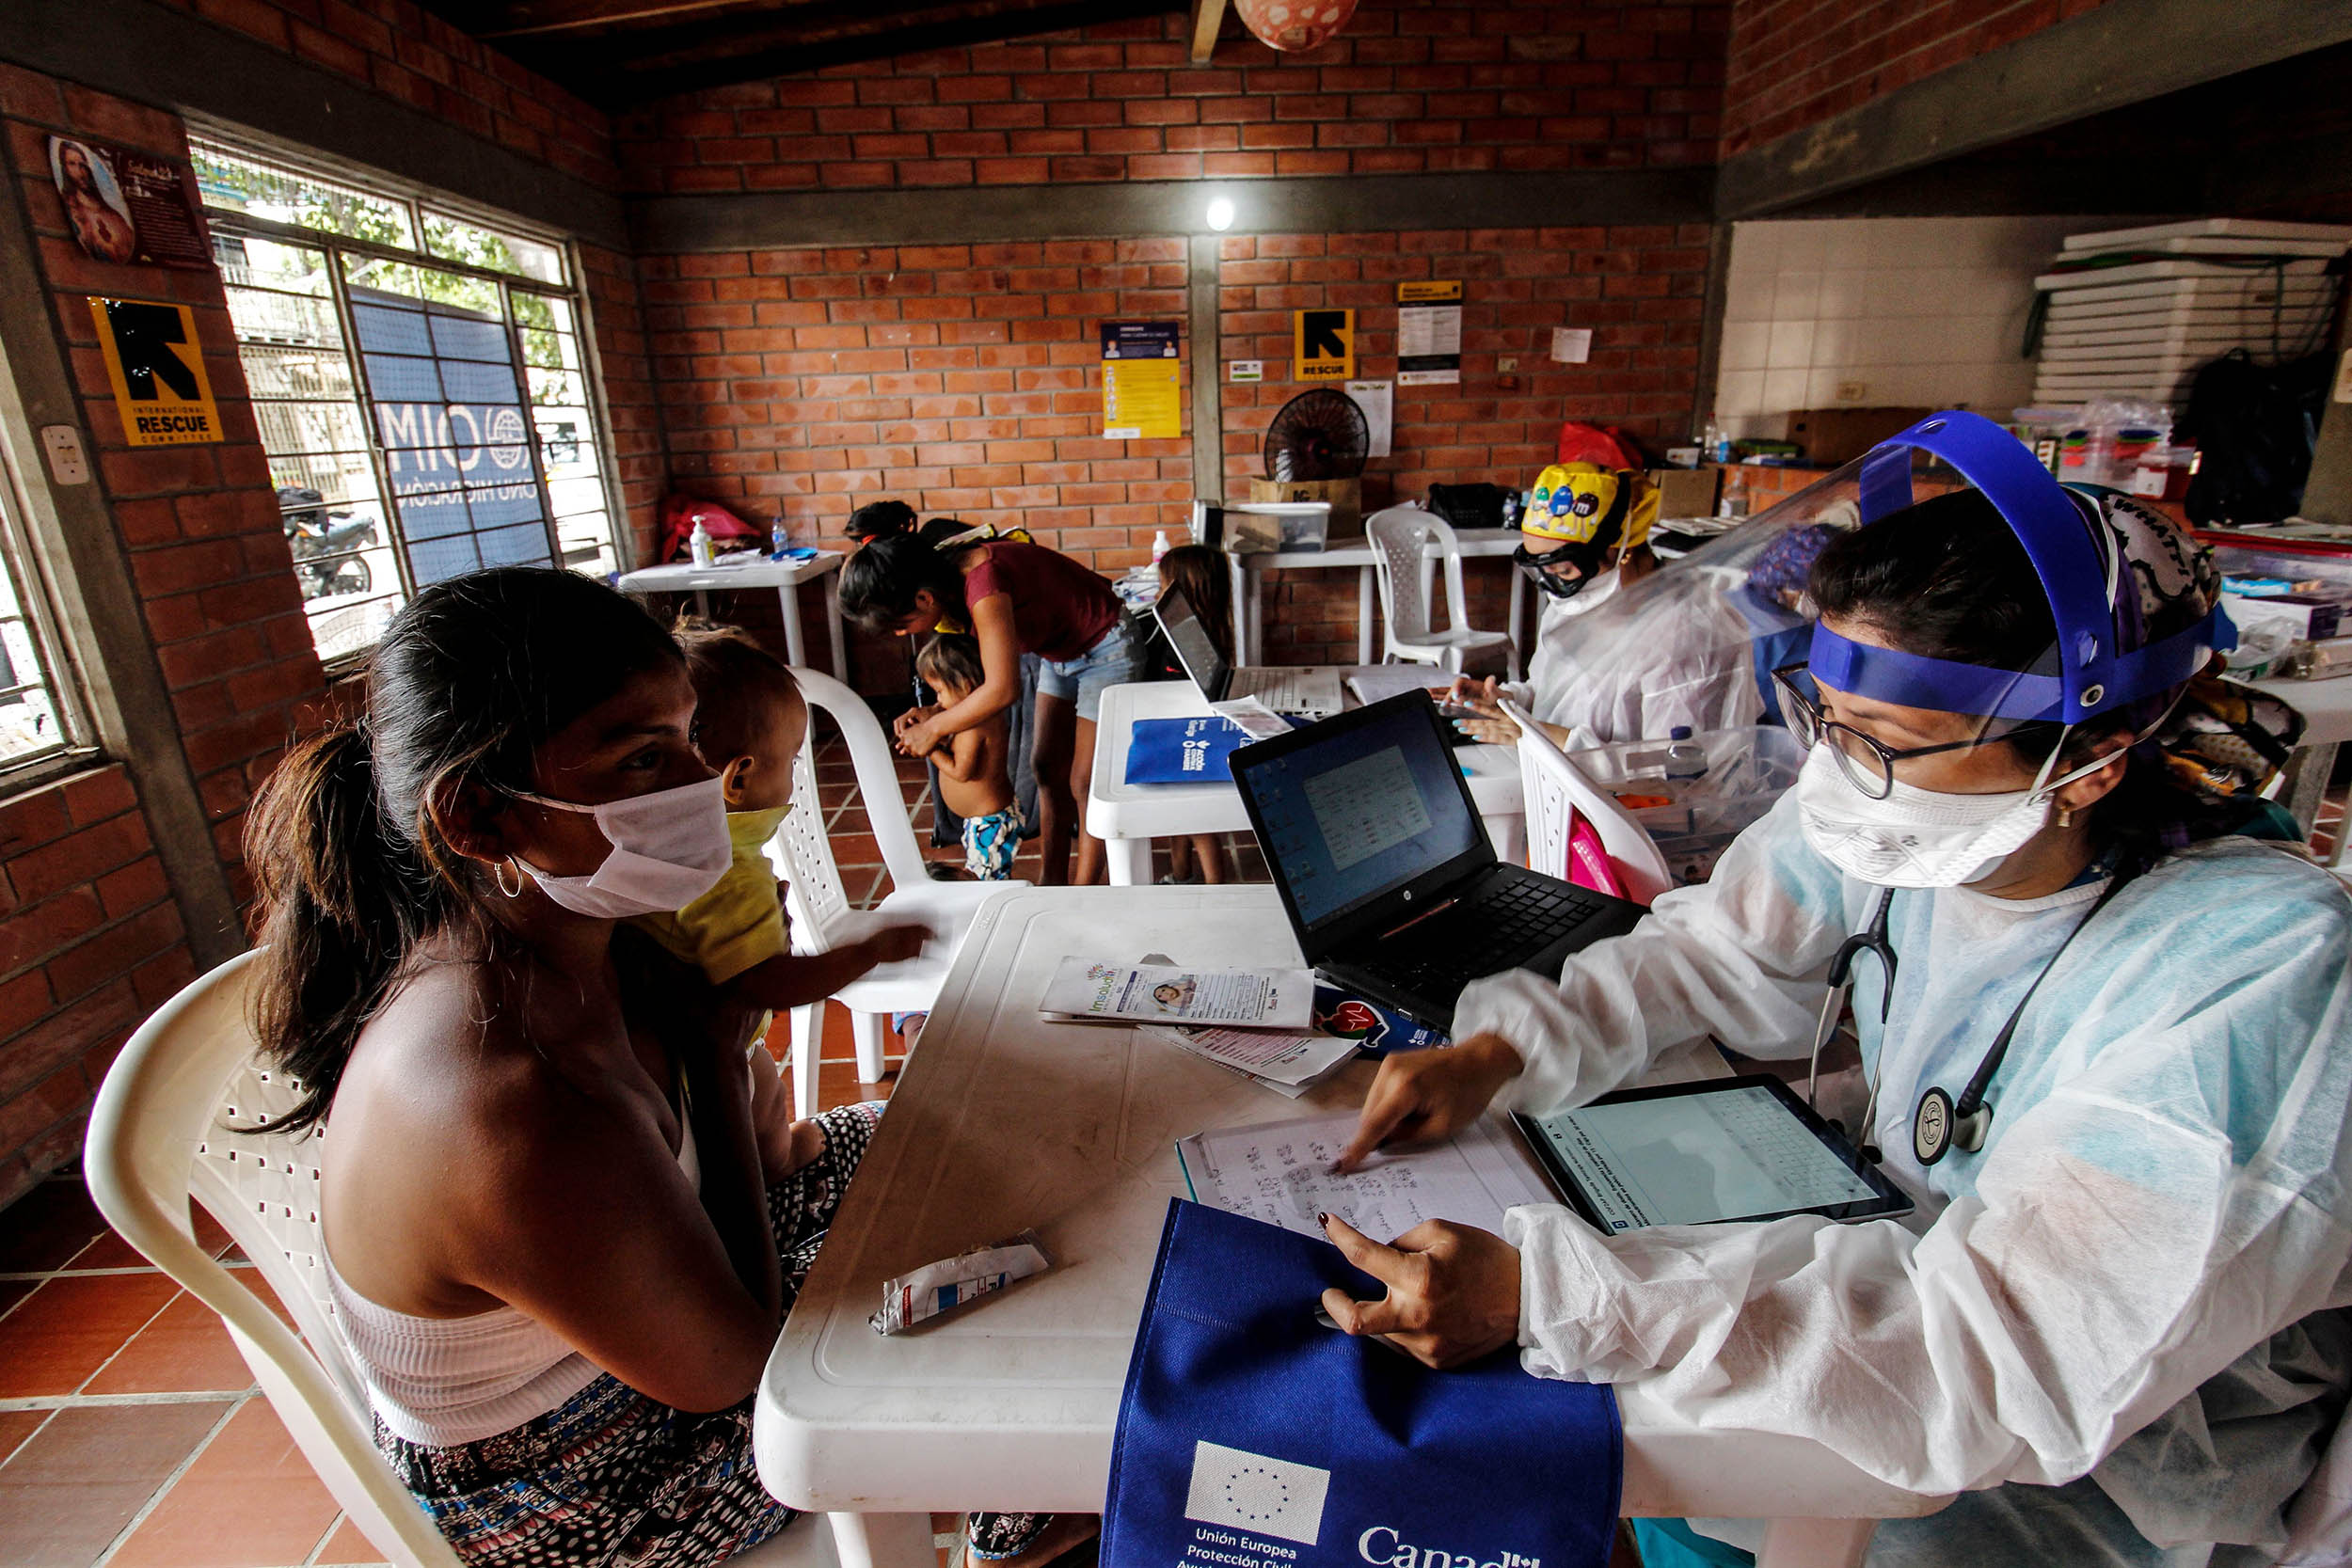 Staffers from Colombia's Secretary of Health check Venezuelan Yukpa indigenous ethnic group member, in Cucuta, Venezuela on July 9, amid the COVID-19 pandemic.